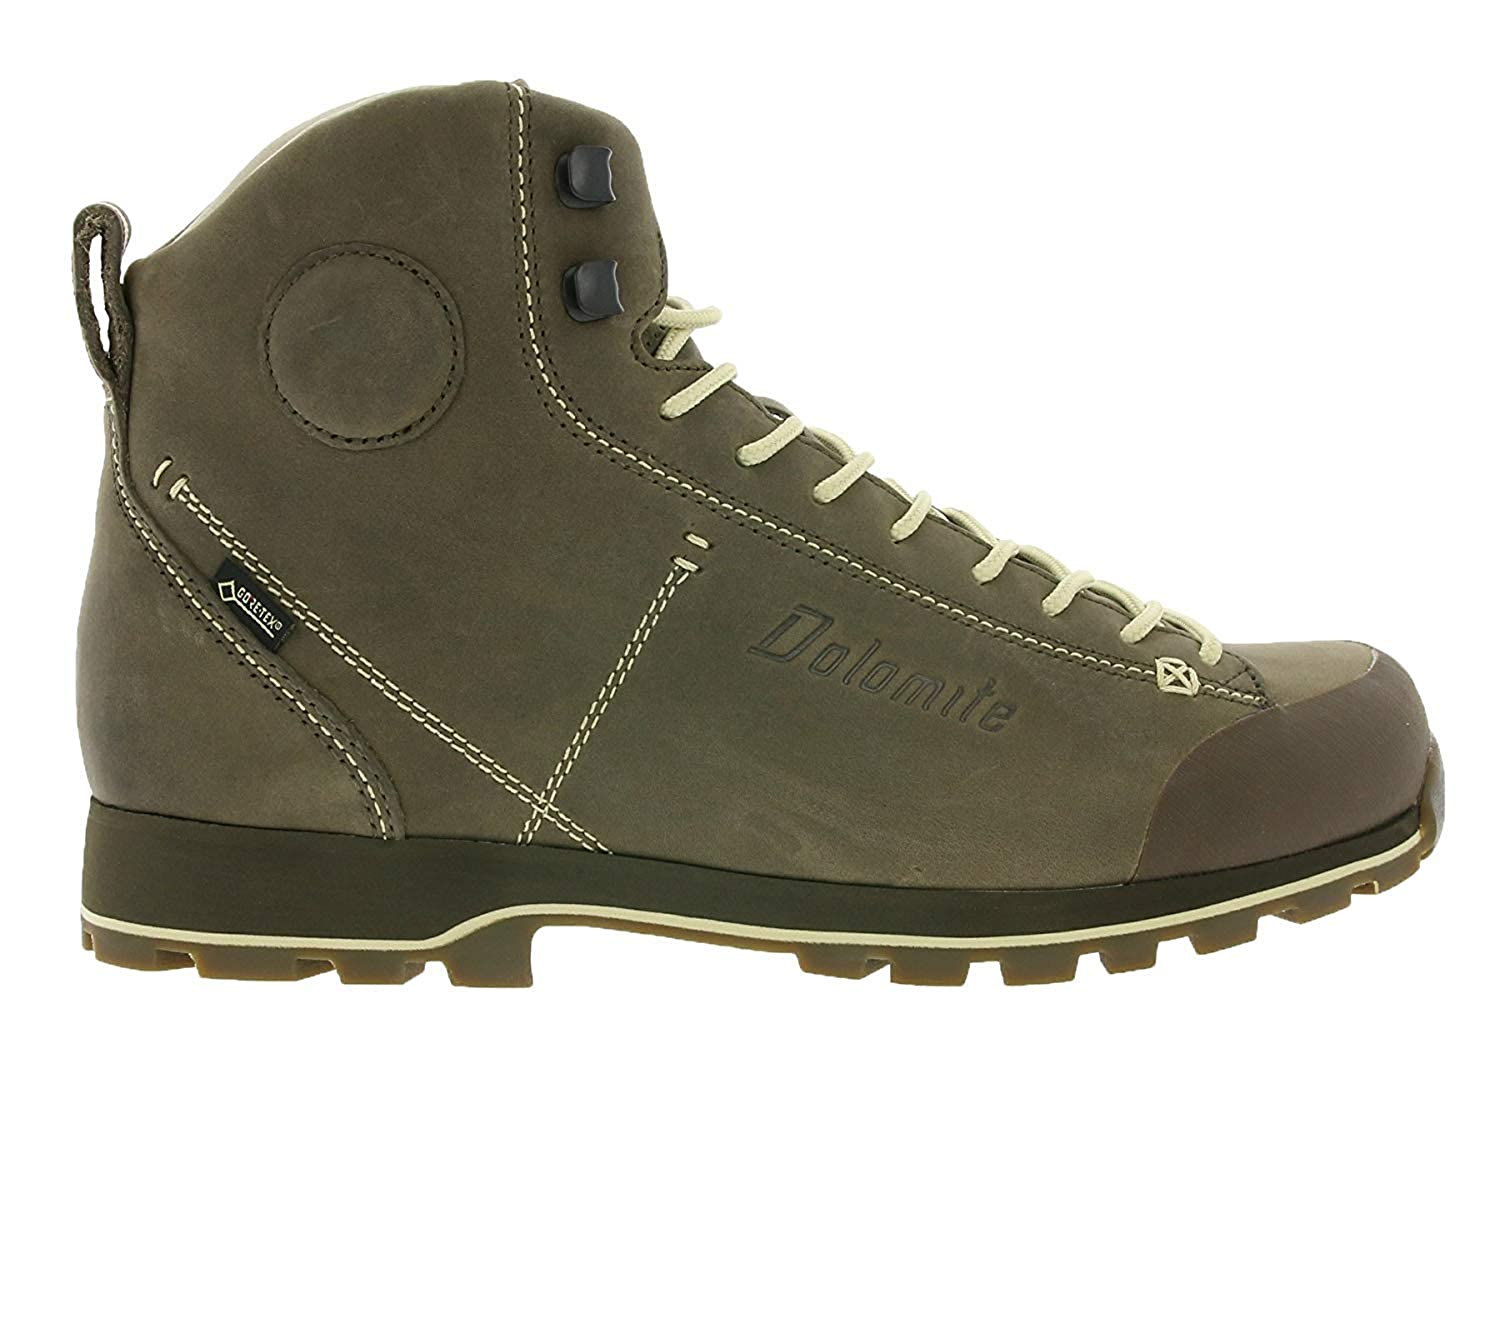 Dolomite 54 Hight Gtx Trekking New Mens Shoes  Amazon.co.uk  Shoes   Bags 6979a753ce3